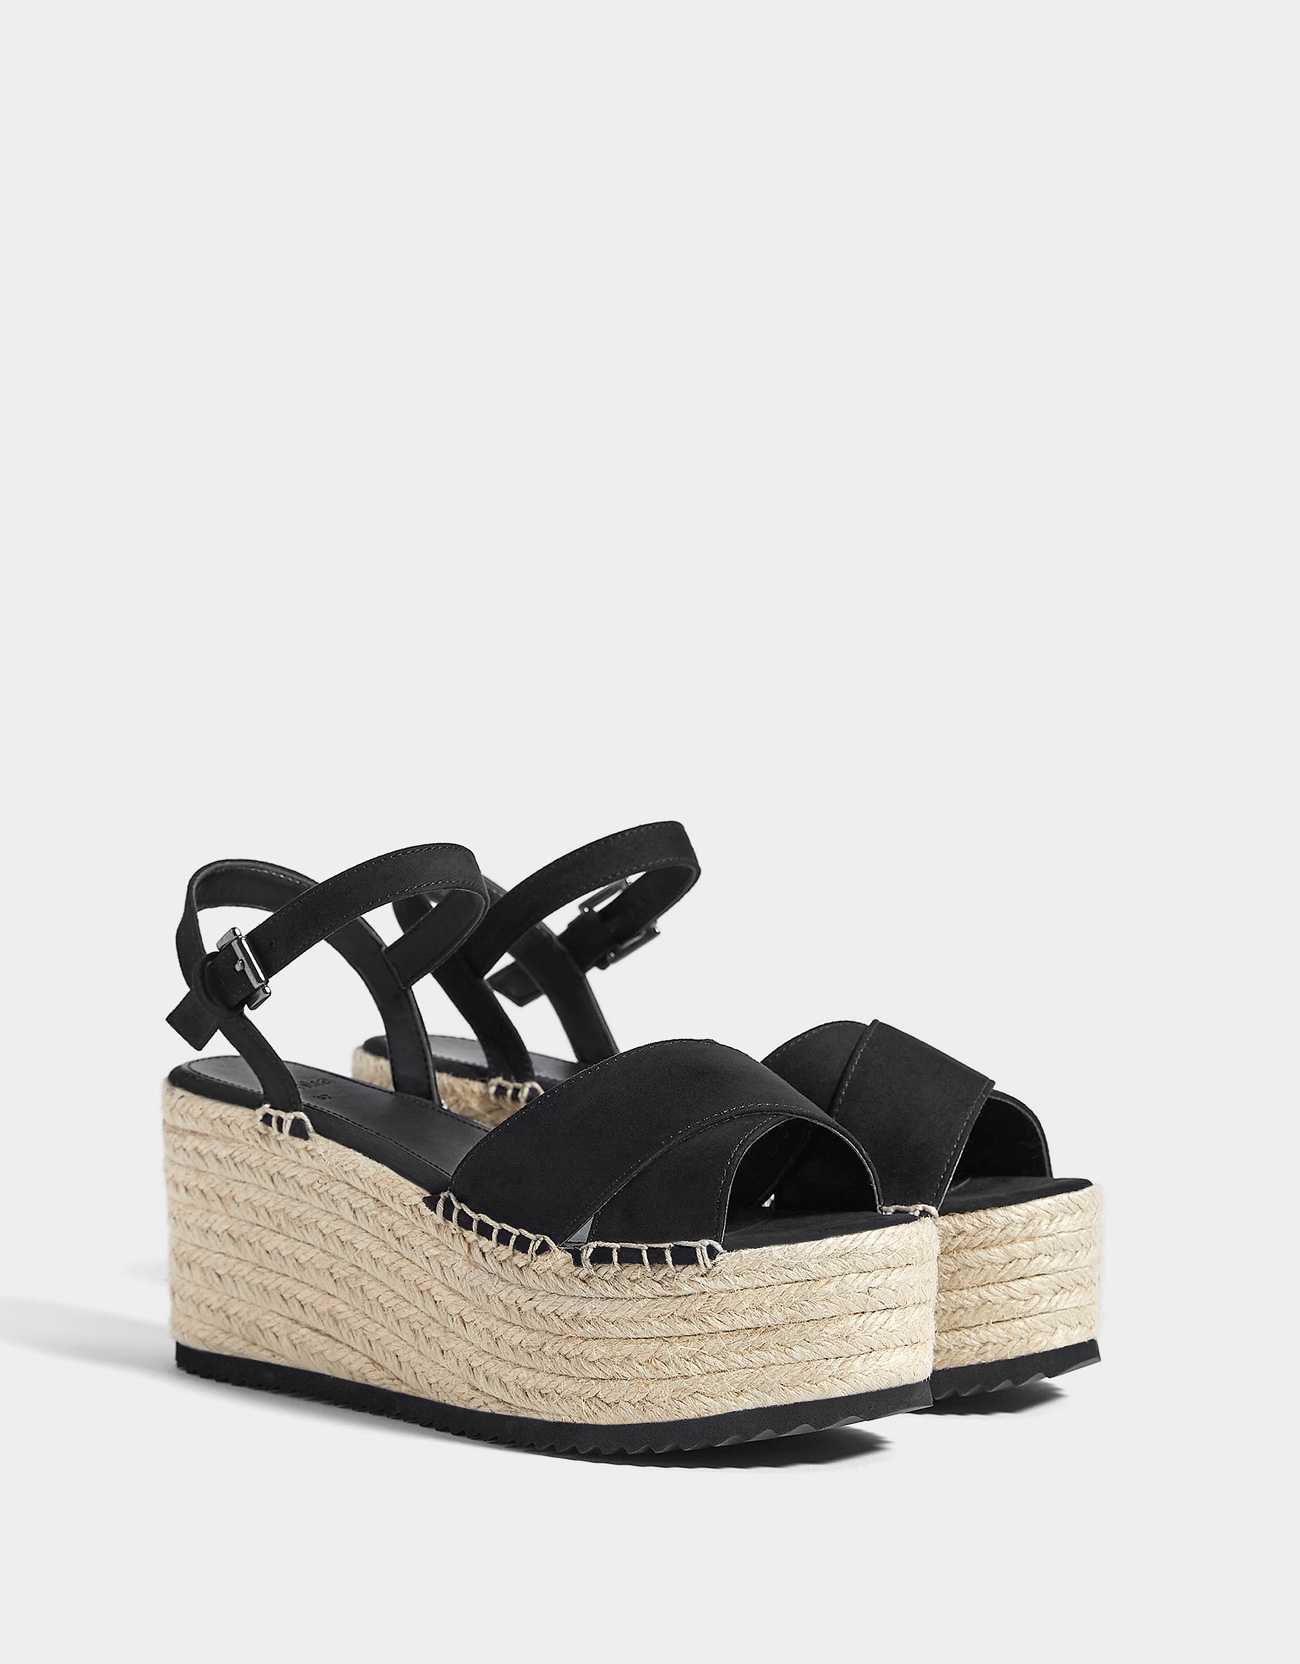 02956119e4a Black jute platform sandals - Wedges and Platforms - Bershka Armenia